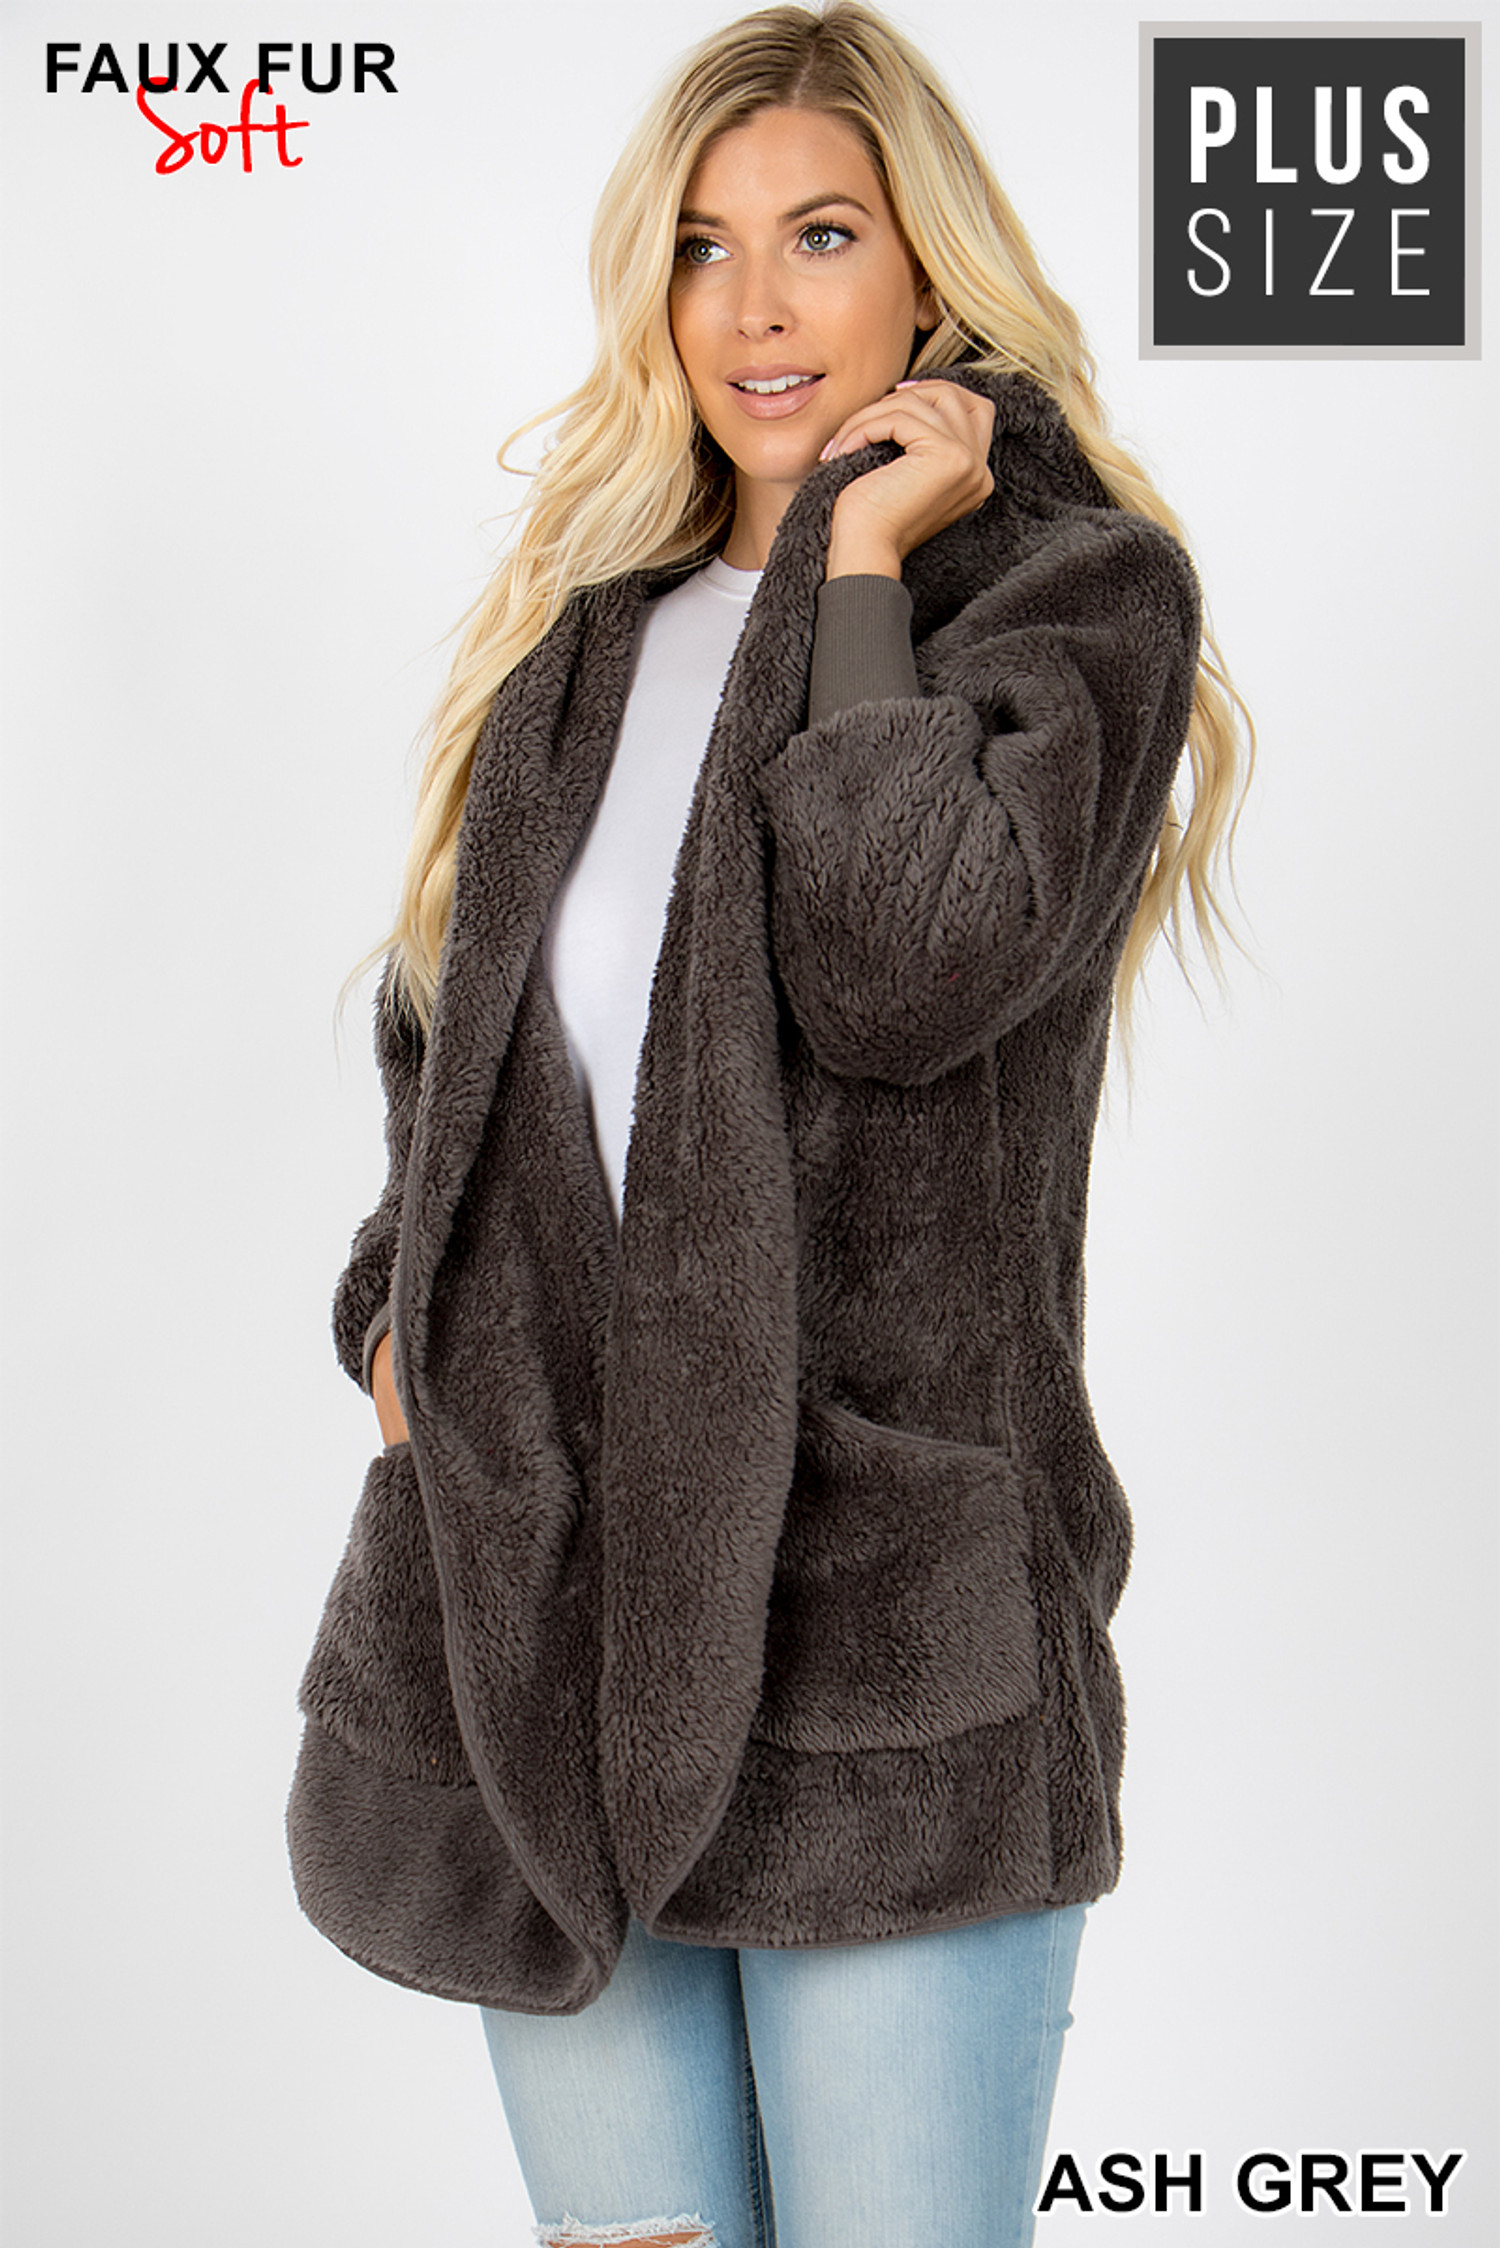 45 Degree image of Ash Grey Faux Fur Hooded Cocoon Plus Size Jacket with Pockets